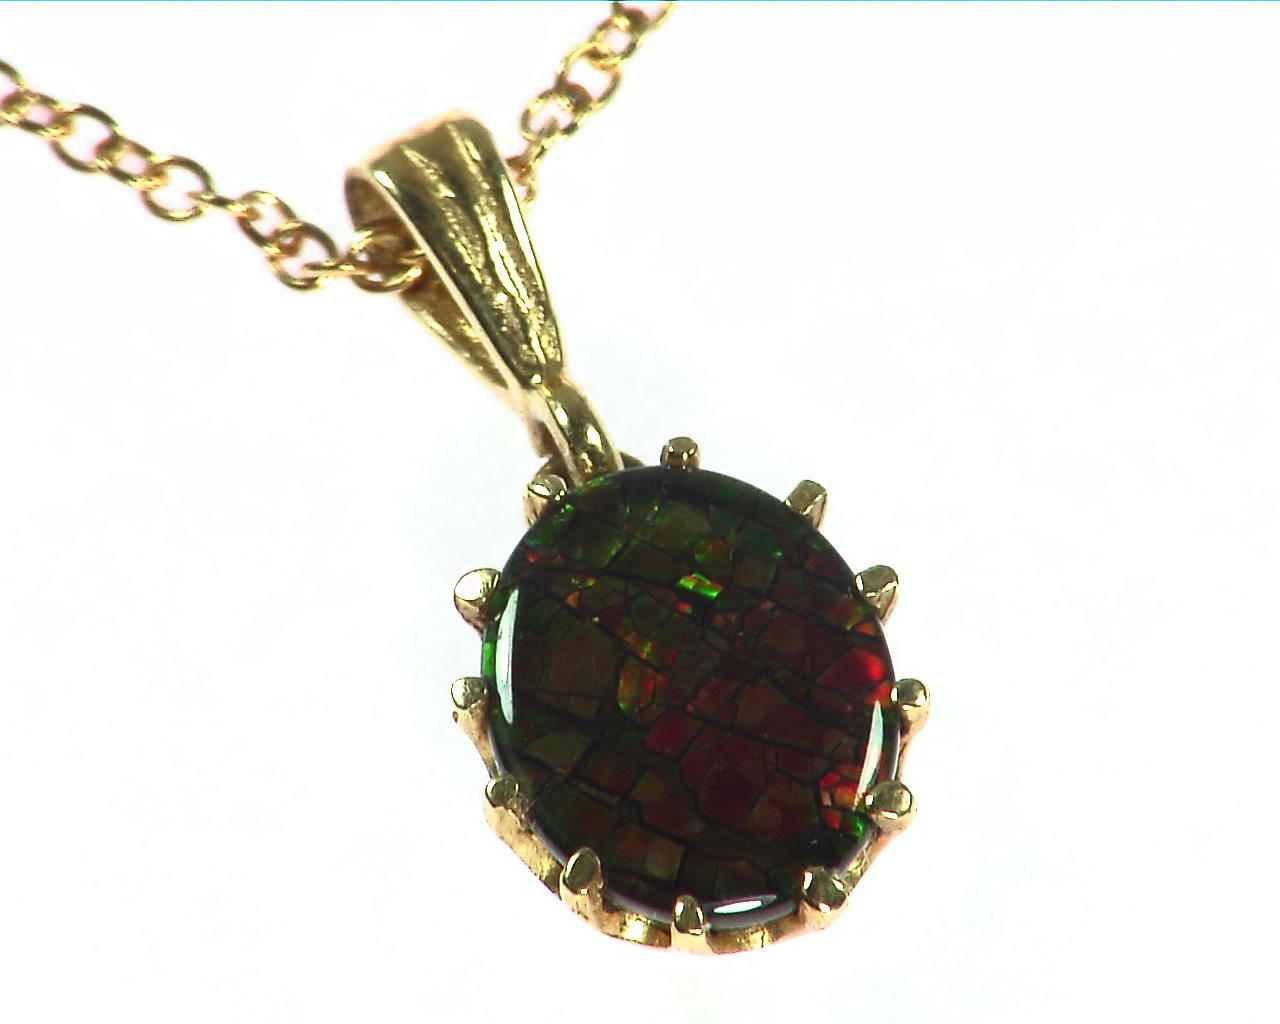 Ammolite Pendent in 14 kt Yellow Gold NFG,932 5